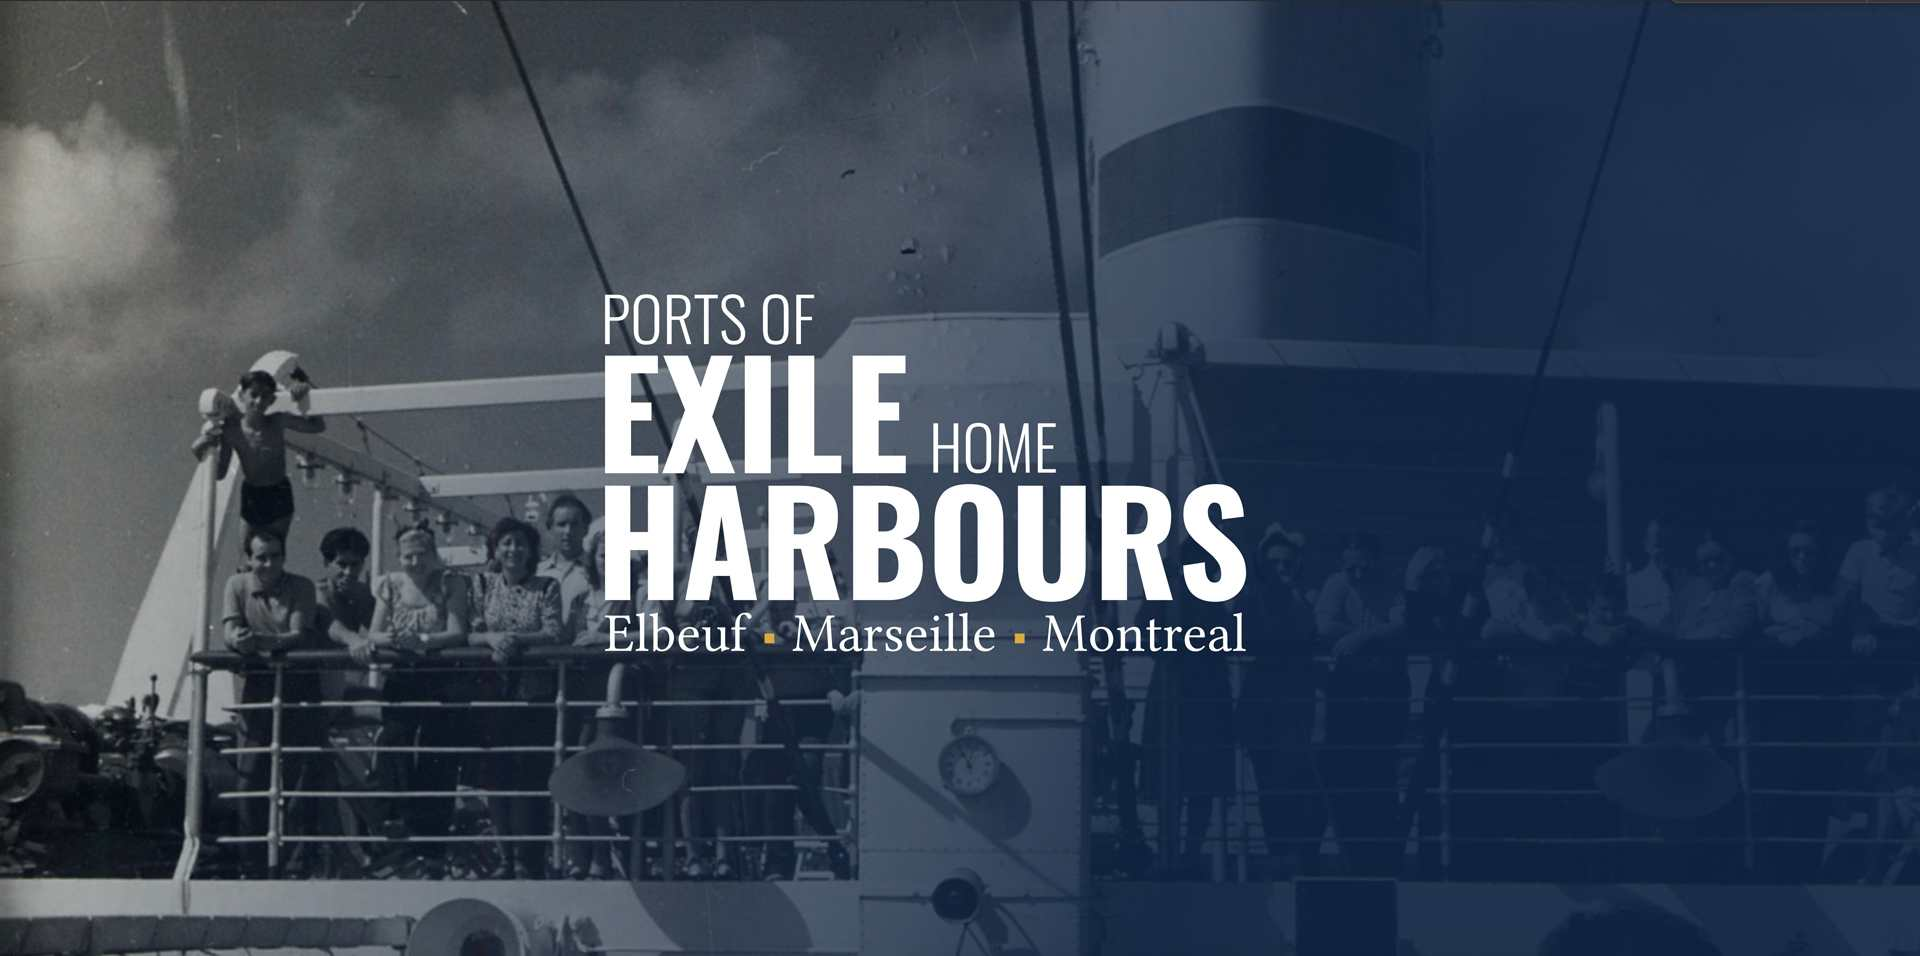 Ports of exile, home harbours